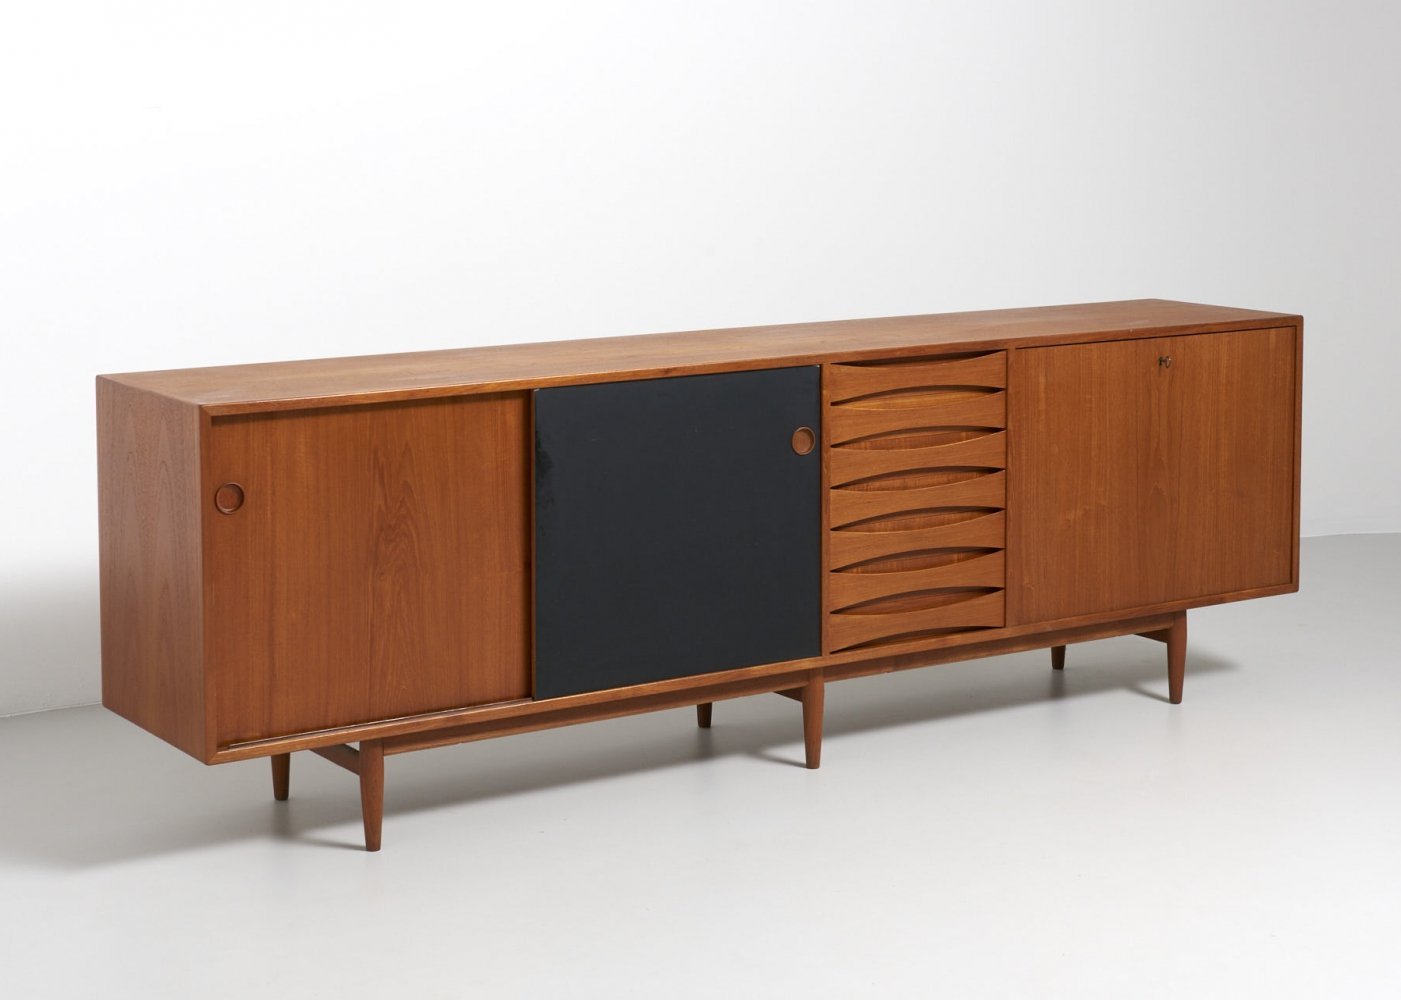 Teak sideboard model 29a by Arne Vodder